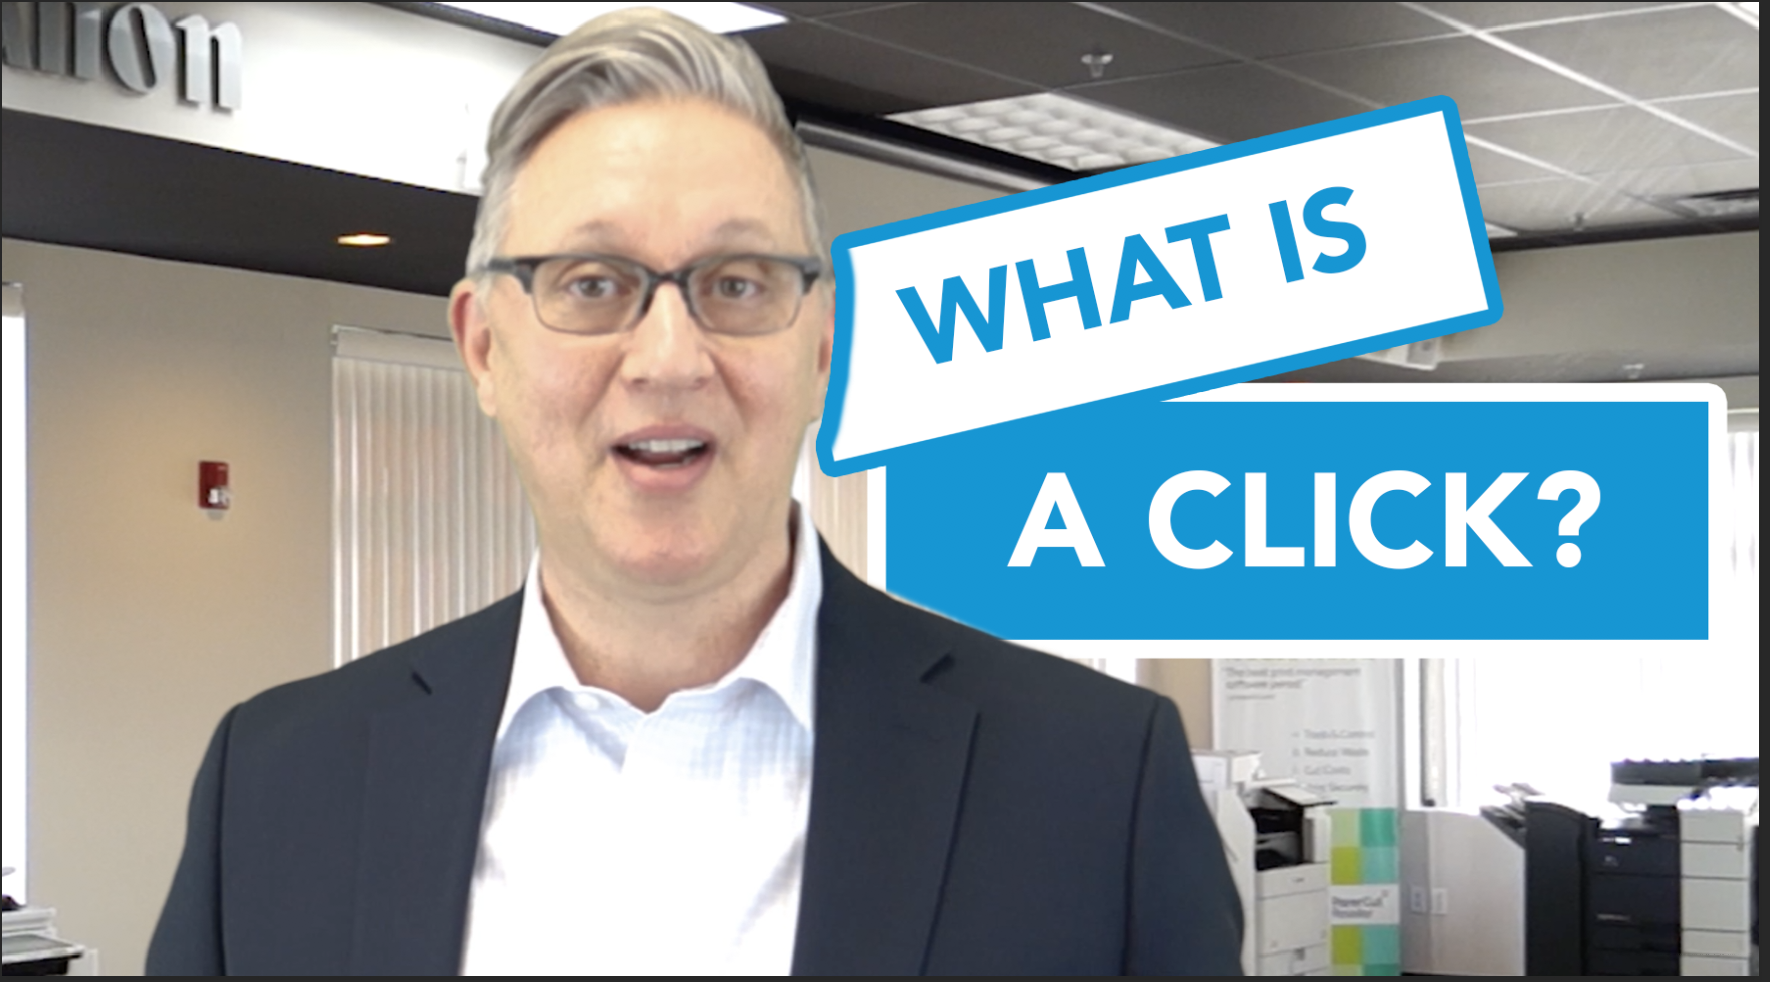 What is a click?